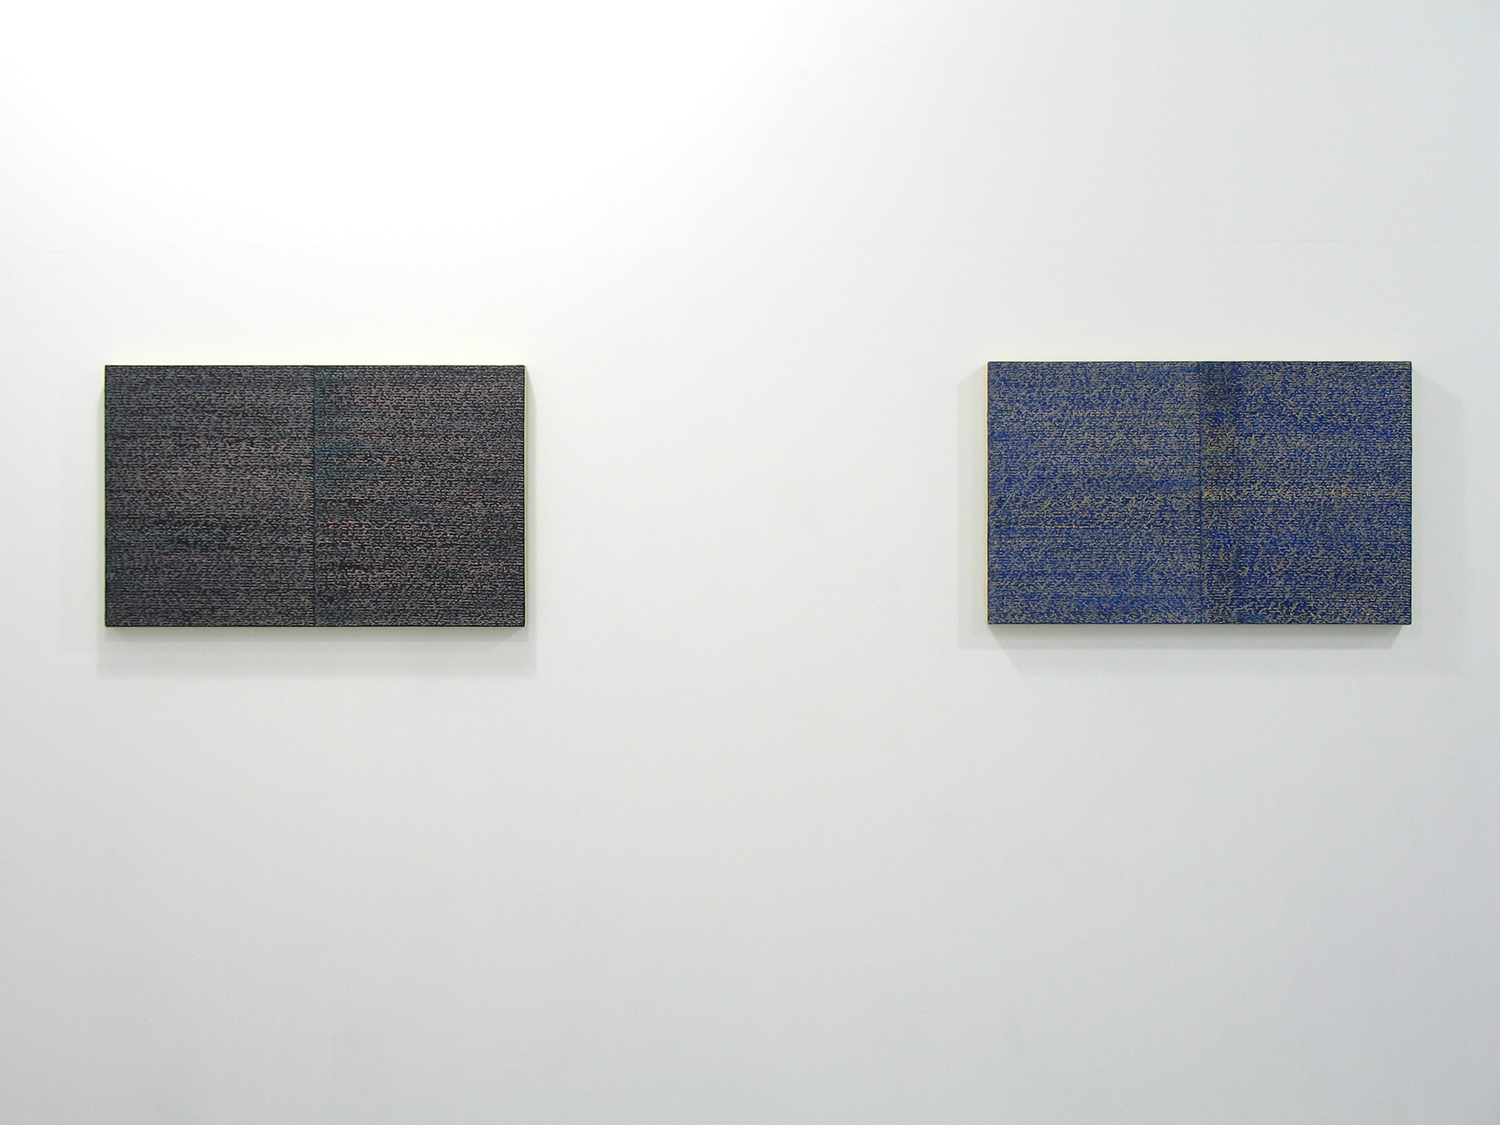 サイモン・フィッツジェラルド Simon Fitzgerald<br>Open Book pink-orange (left) Open Book yellow-blue (right)<br>Oil, Amber on canvas over panel, 37 x 60 cm<br>2008 each